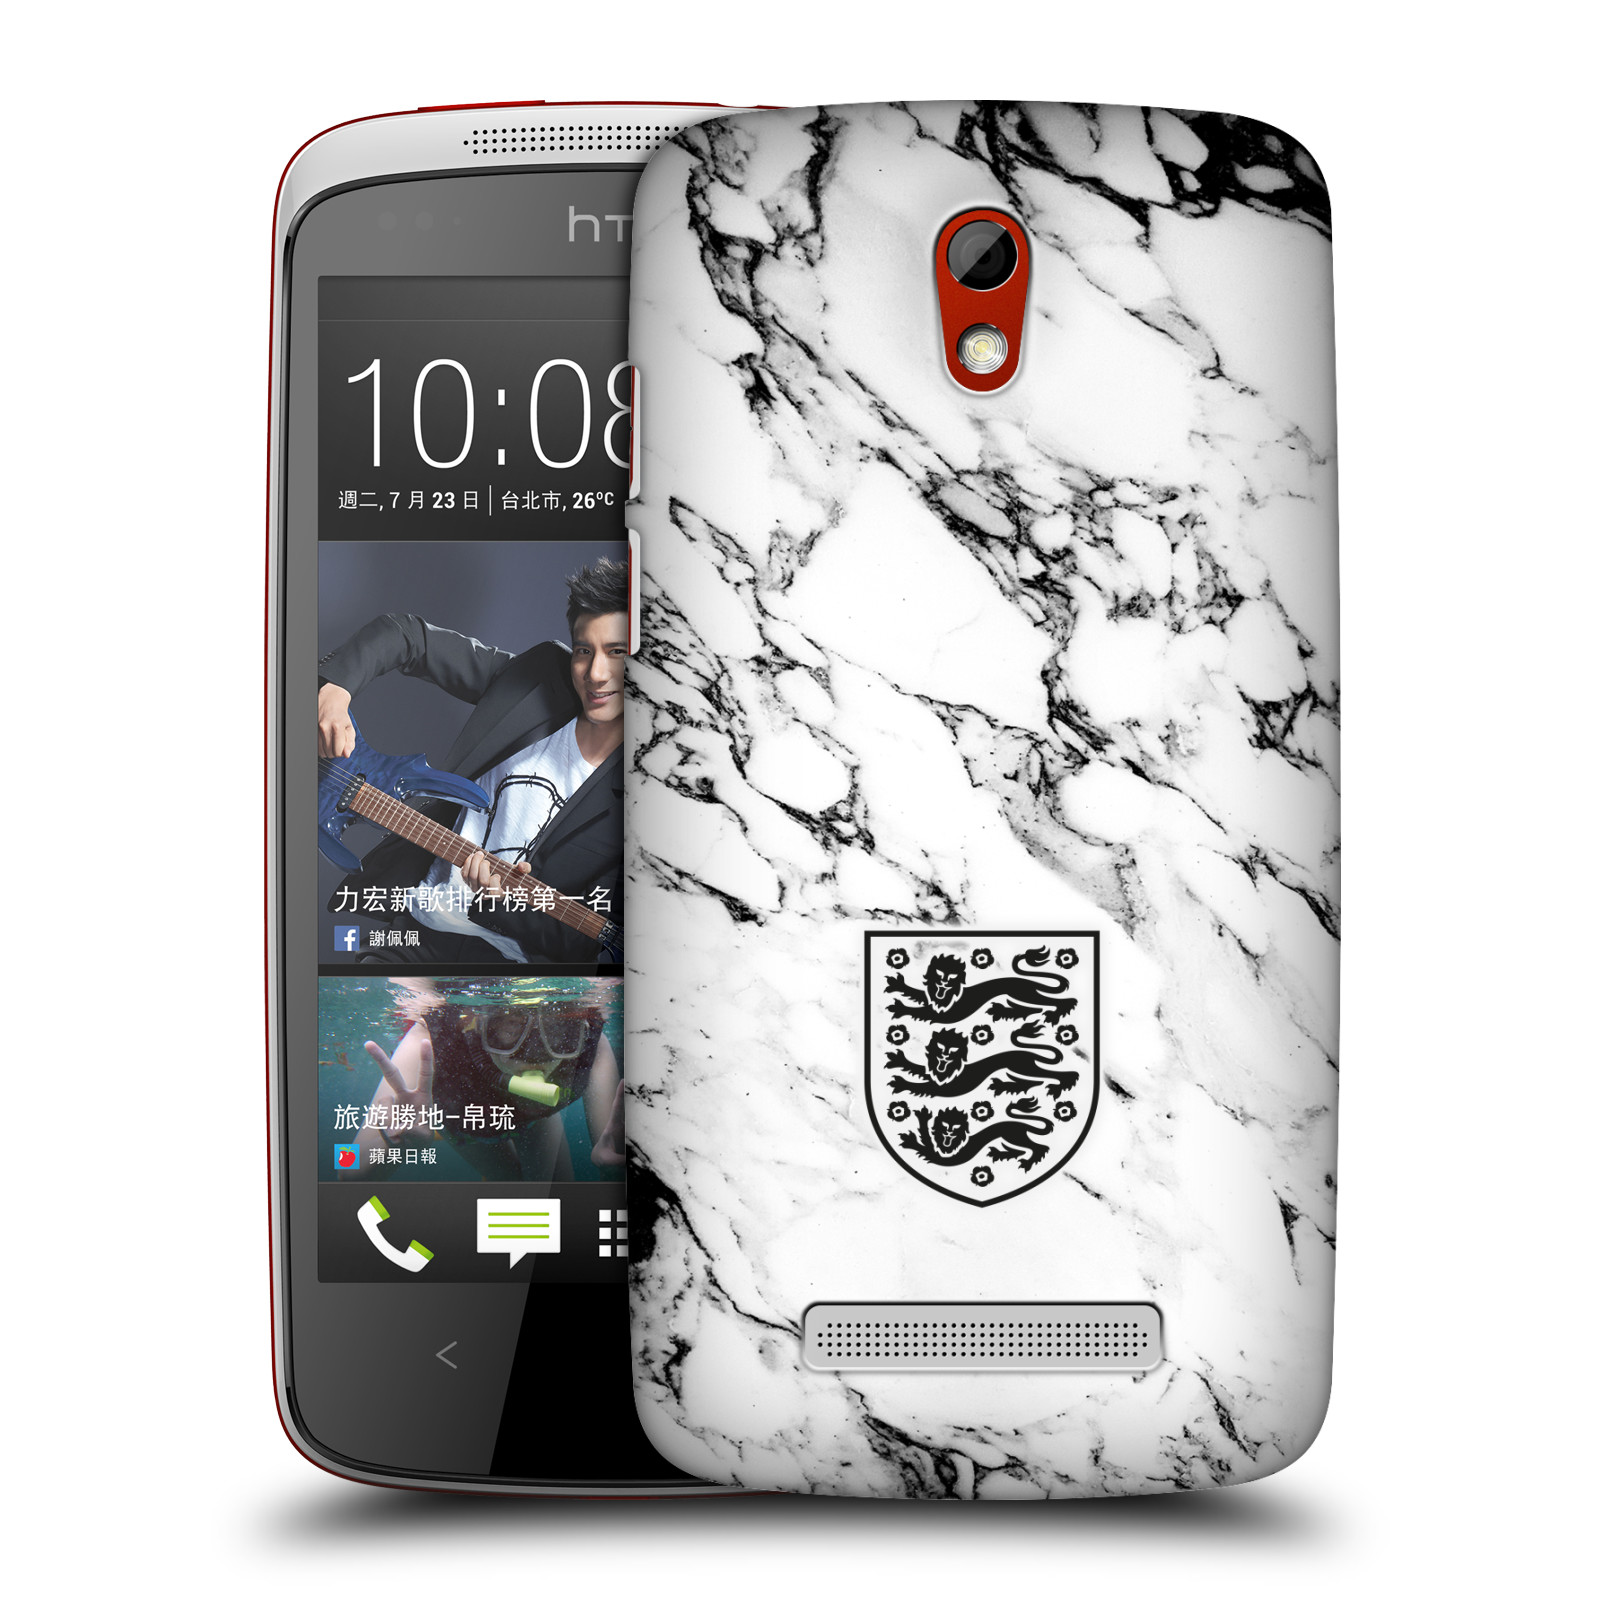 OFFICIAL-THE-FA-2017-18-CREST-AND-PATTERNS-HARD-BACK-CASE-FOR-HTC-PHONES-2